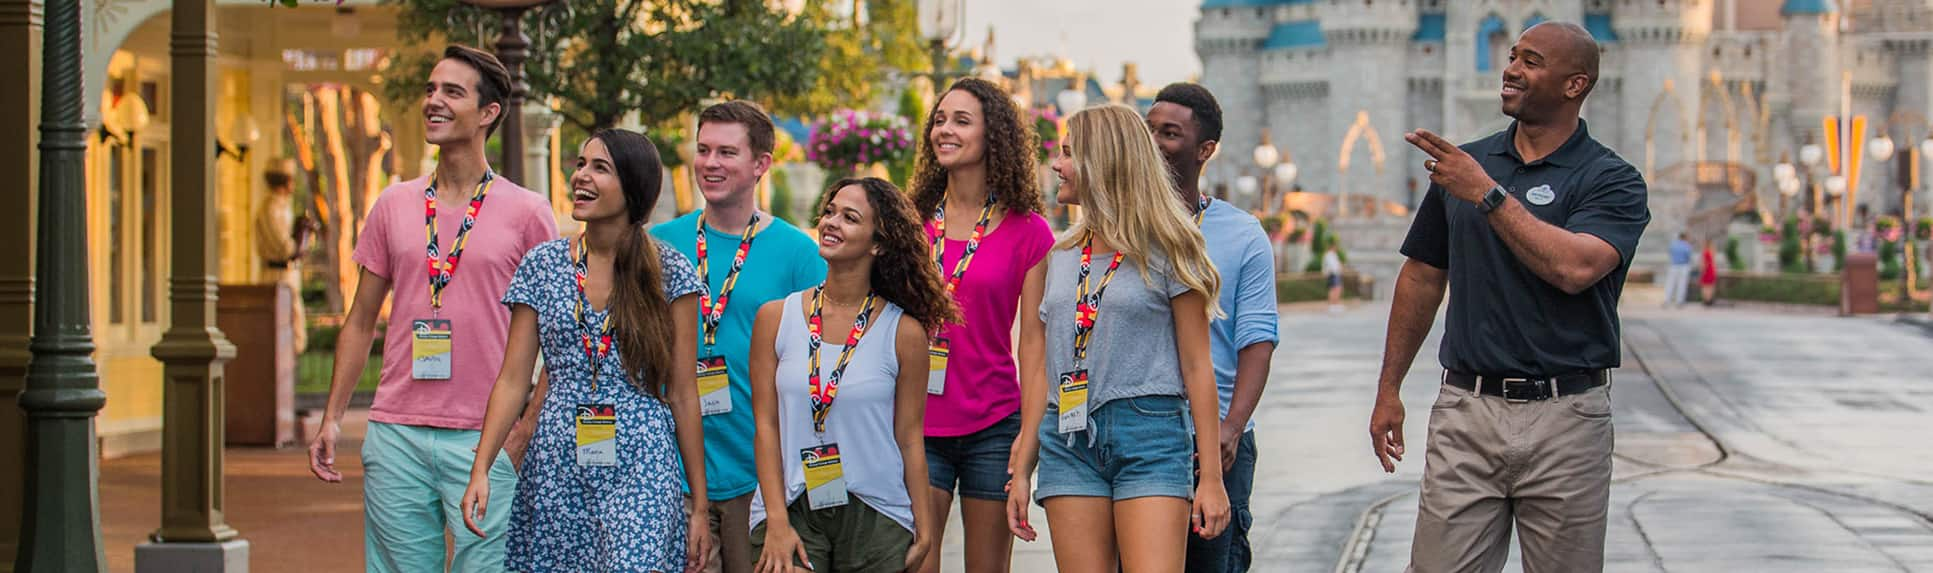 A Disney Cast Member leading a group of young adults through Magic Kingdom Park